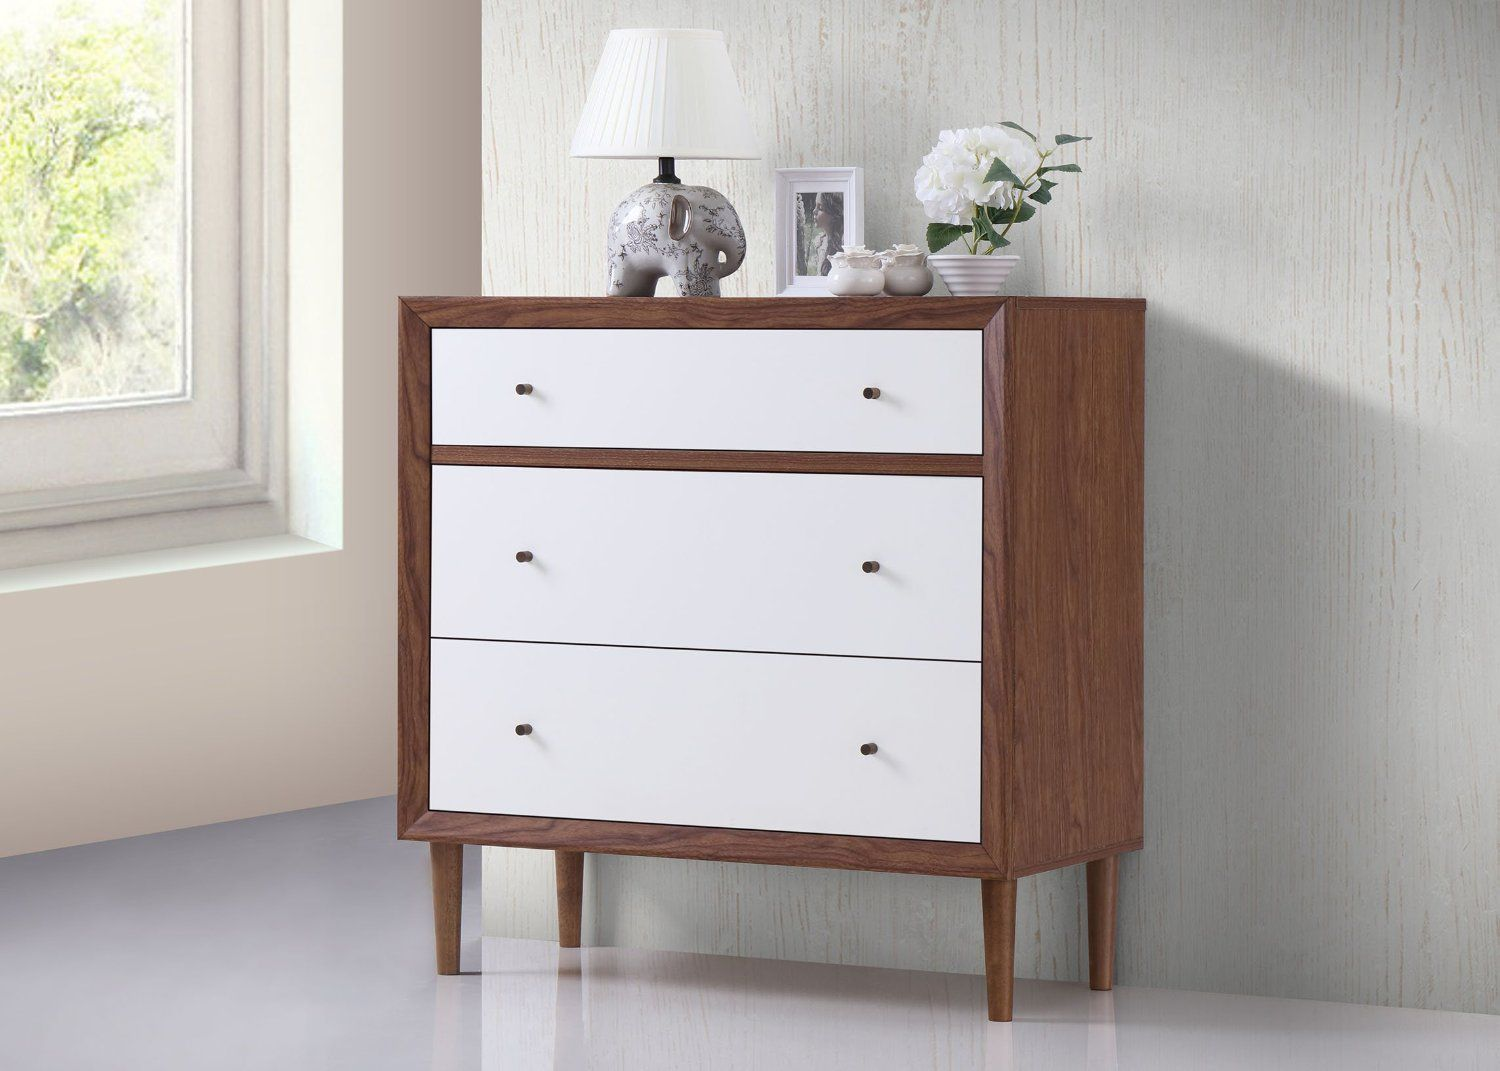 White And Walnut Bedroom Furniture Baxton Studio Harlow Mid Century Modern Scandinavian Style White